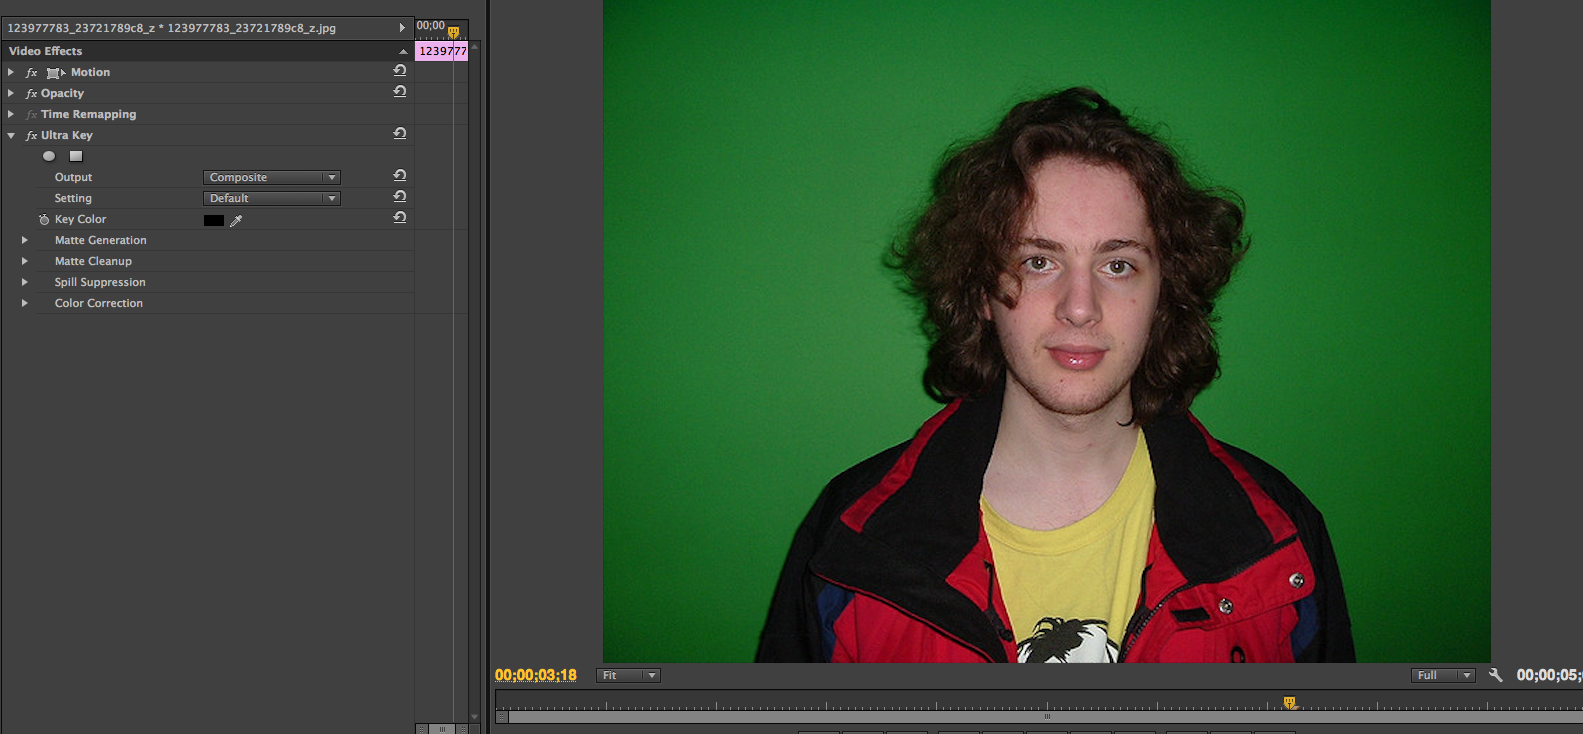 Green Screen: How to chroma key in Adobe Premiere Pro